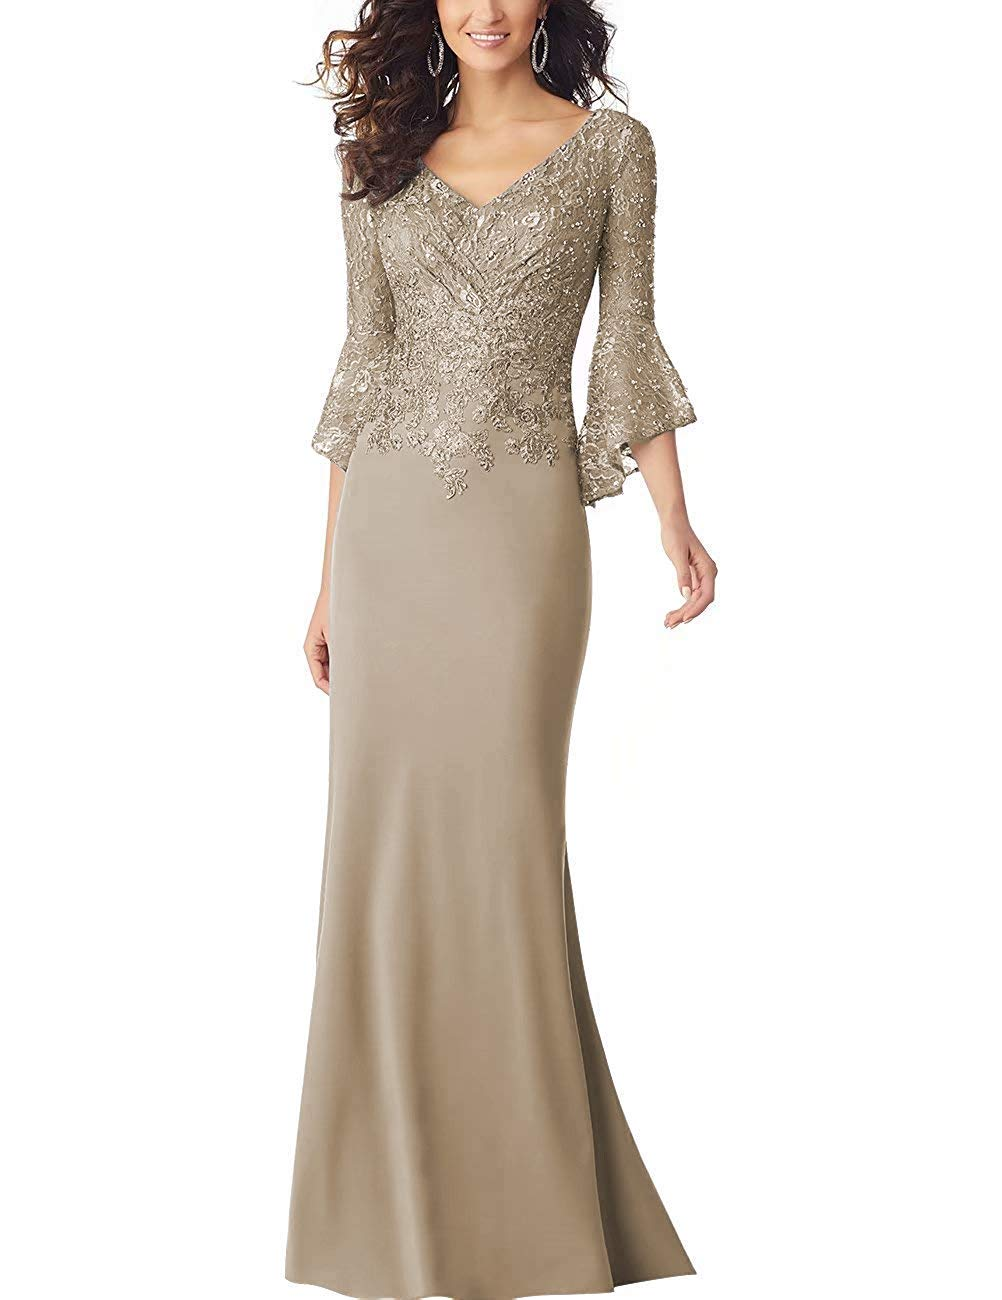 Champagne Long Sleeve Mother Of The Bride Dress Evening Formal Party Gowns lace